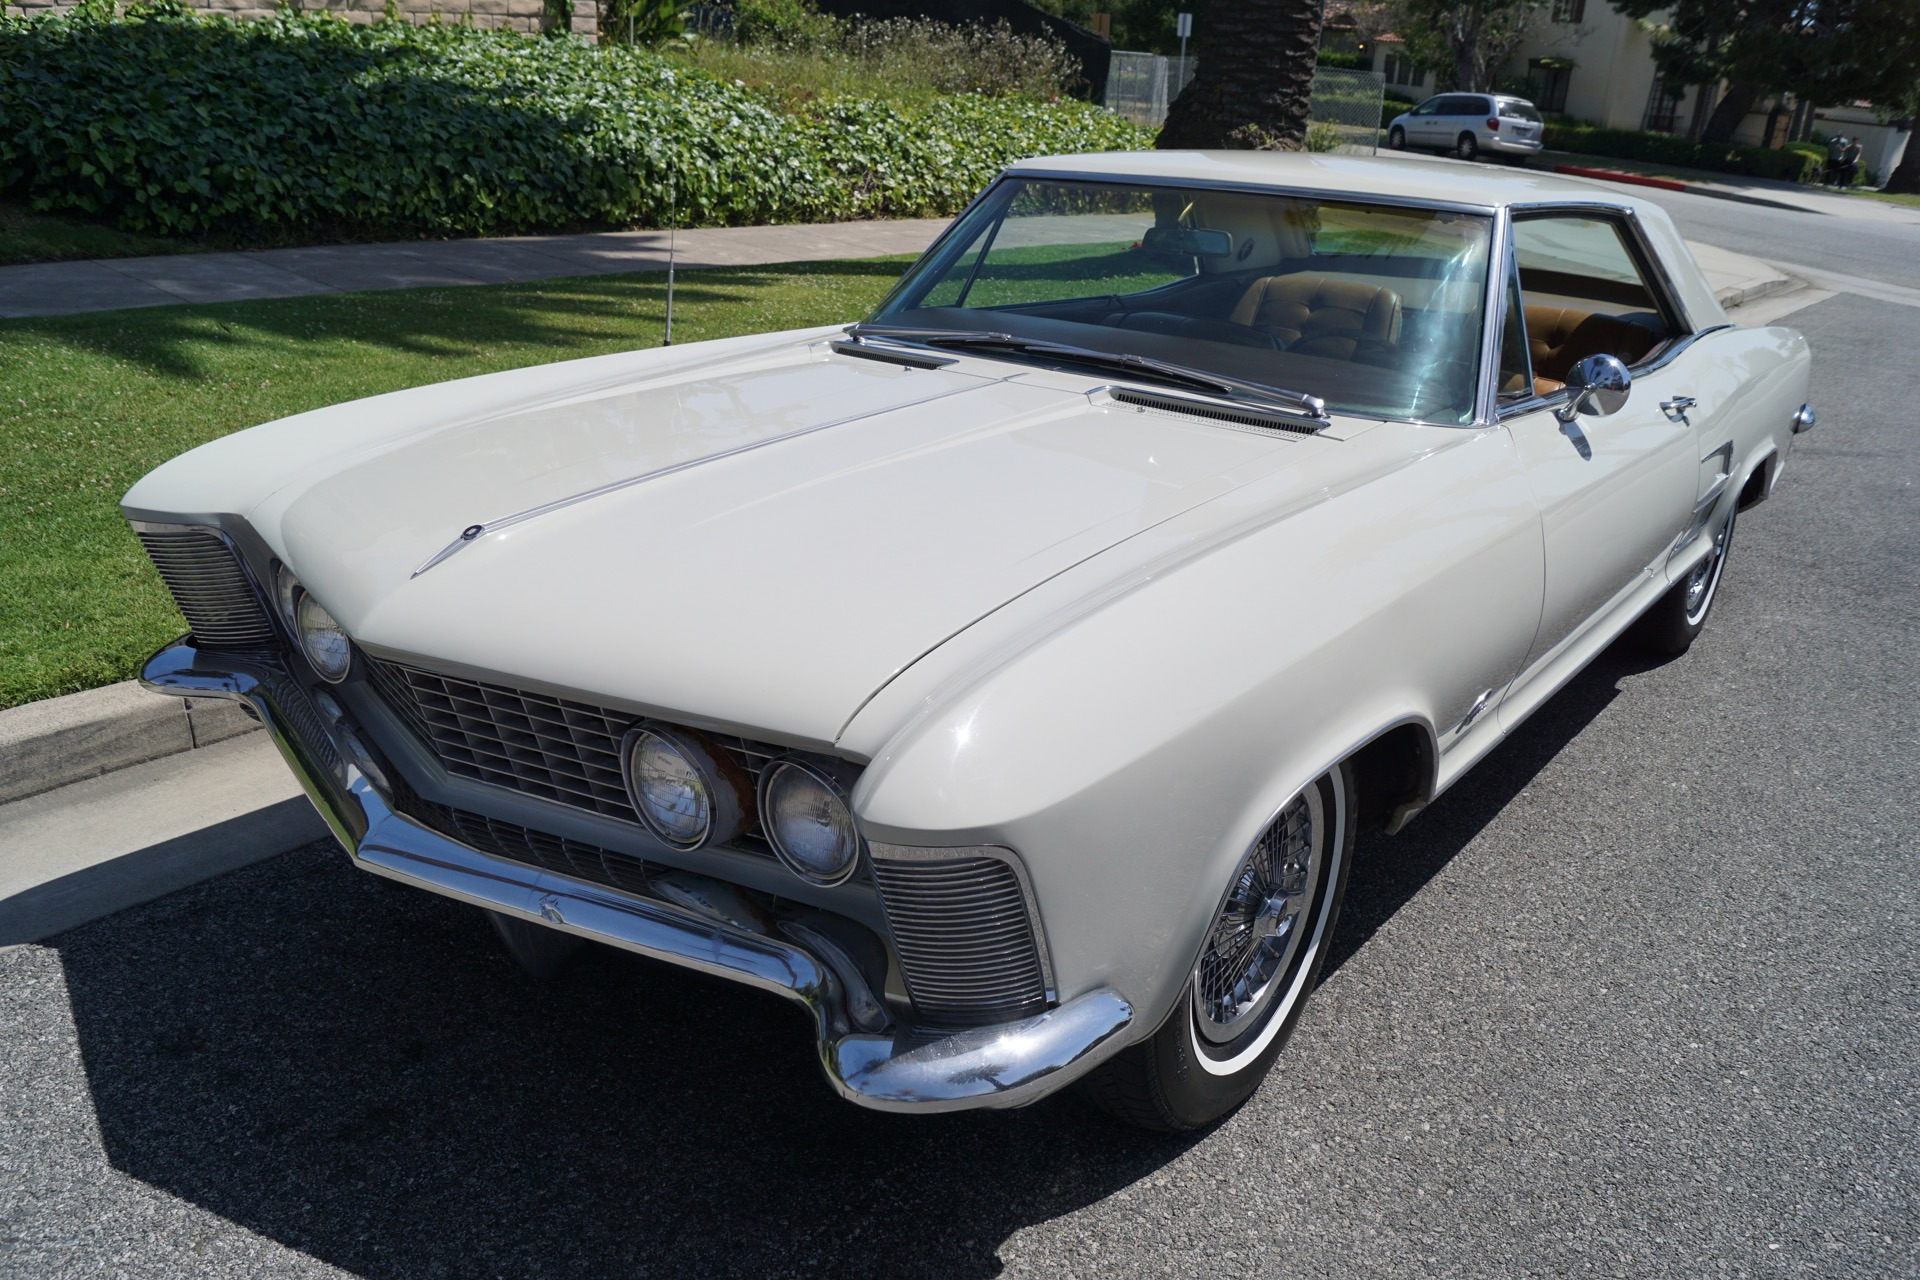 Buick Riviera Saddle Leather Stock For Sale Near - Buick stock